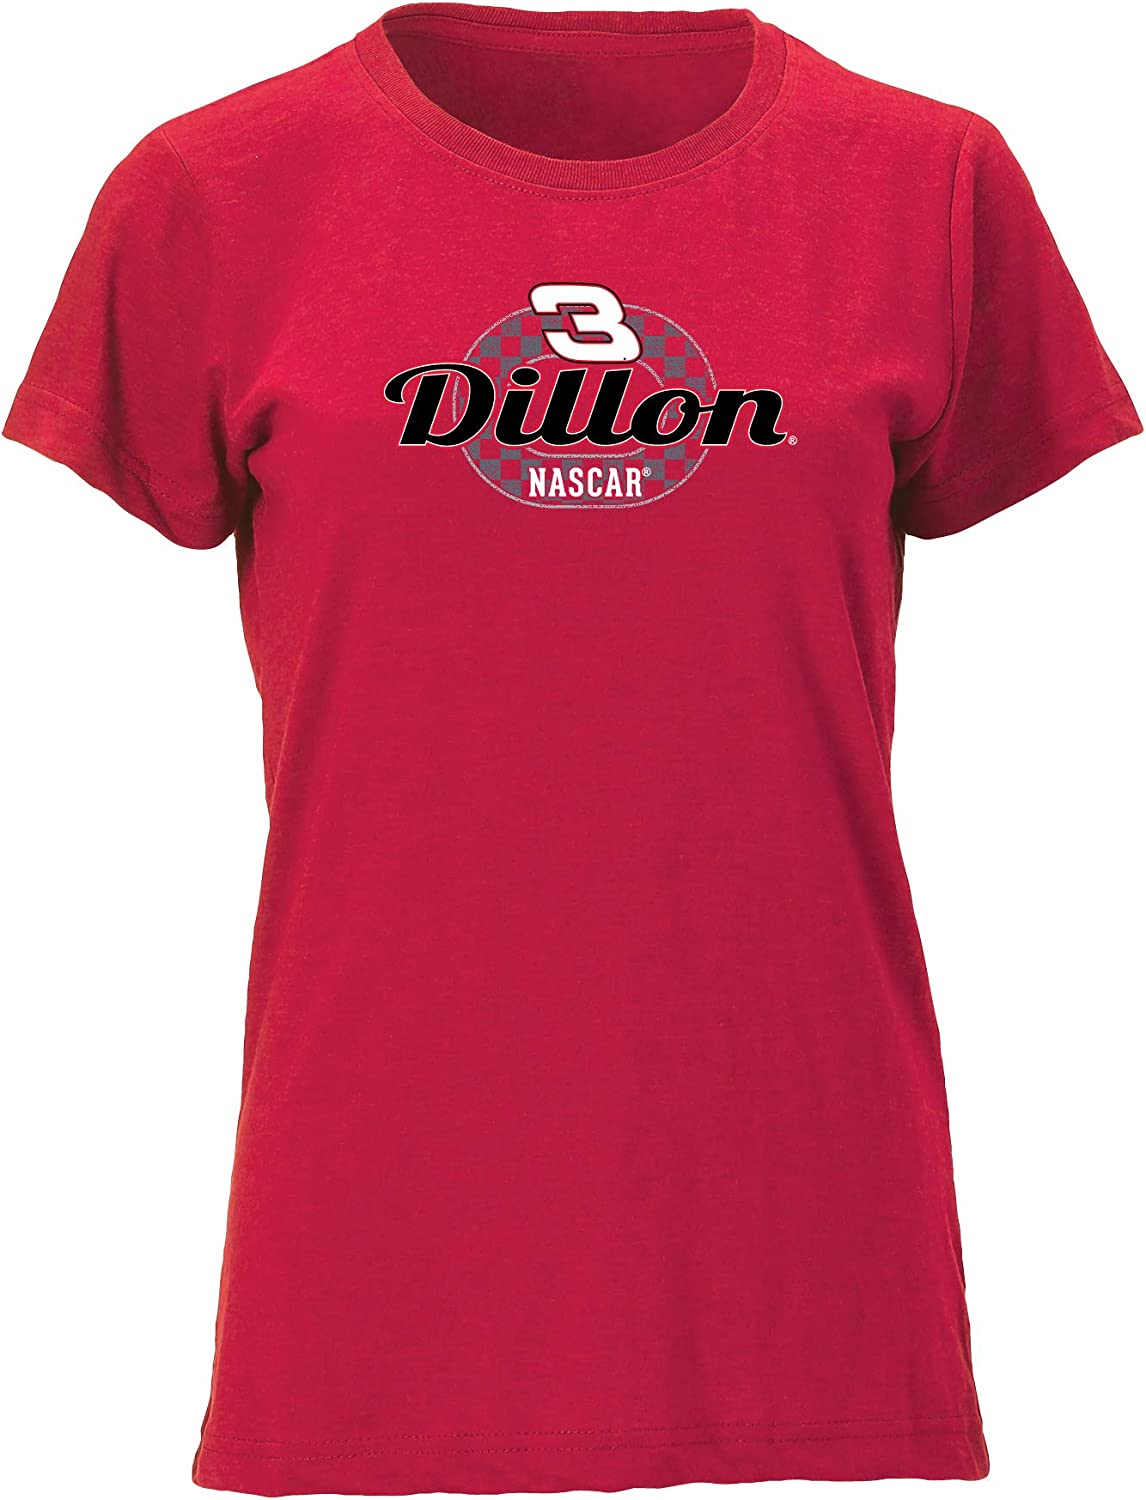 NASCAR Richard Childress Racing Austin Dillon Womens W Vintage Blend Relaxed Fit S//S TW Vintage Blend Relaxed Fit S//S T X-Large Vintage Red